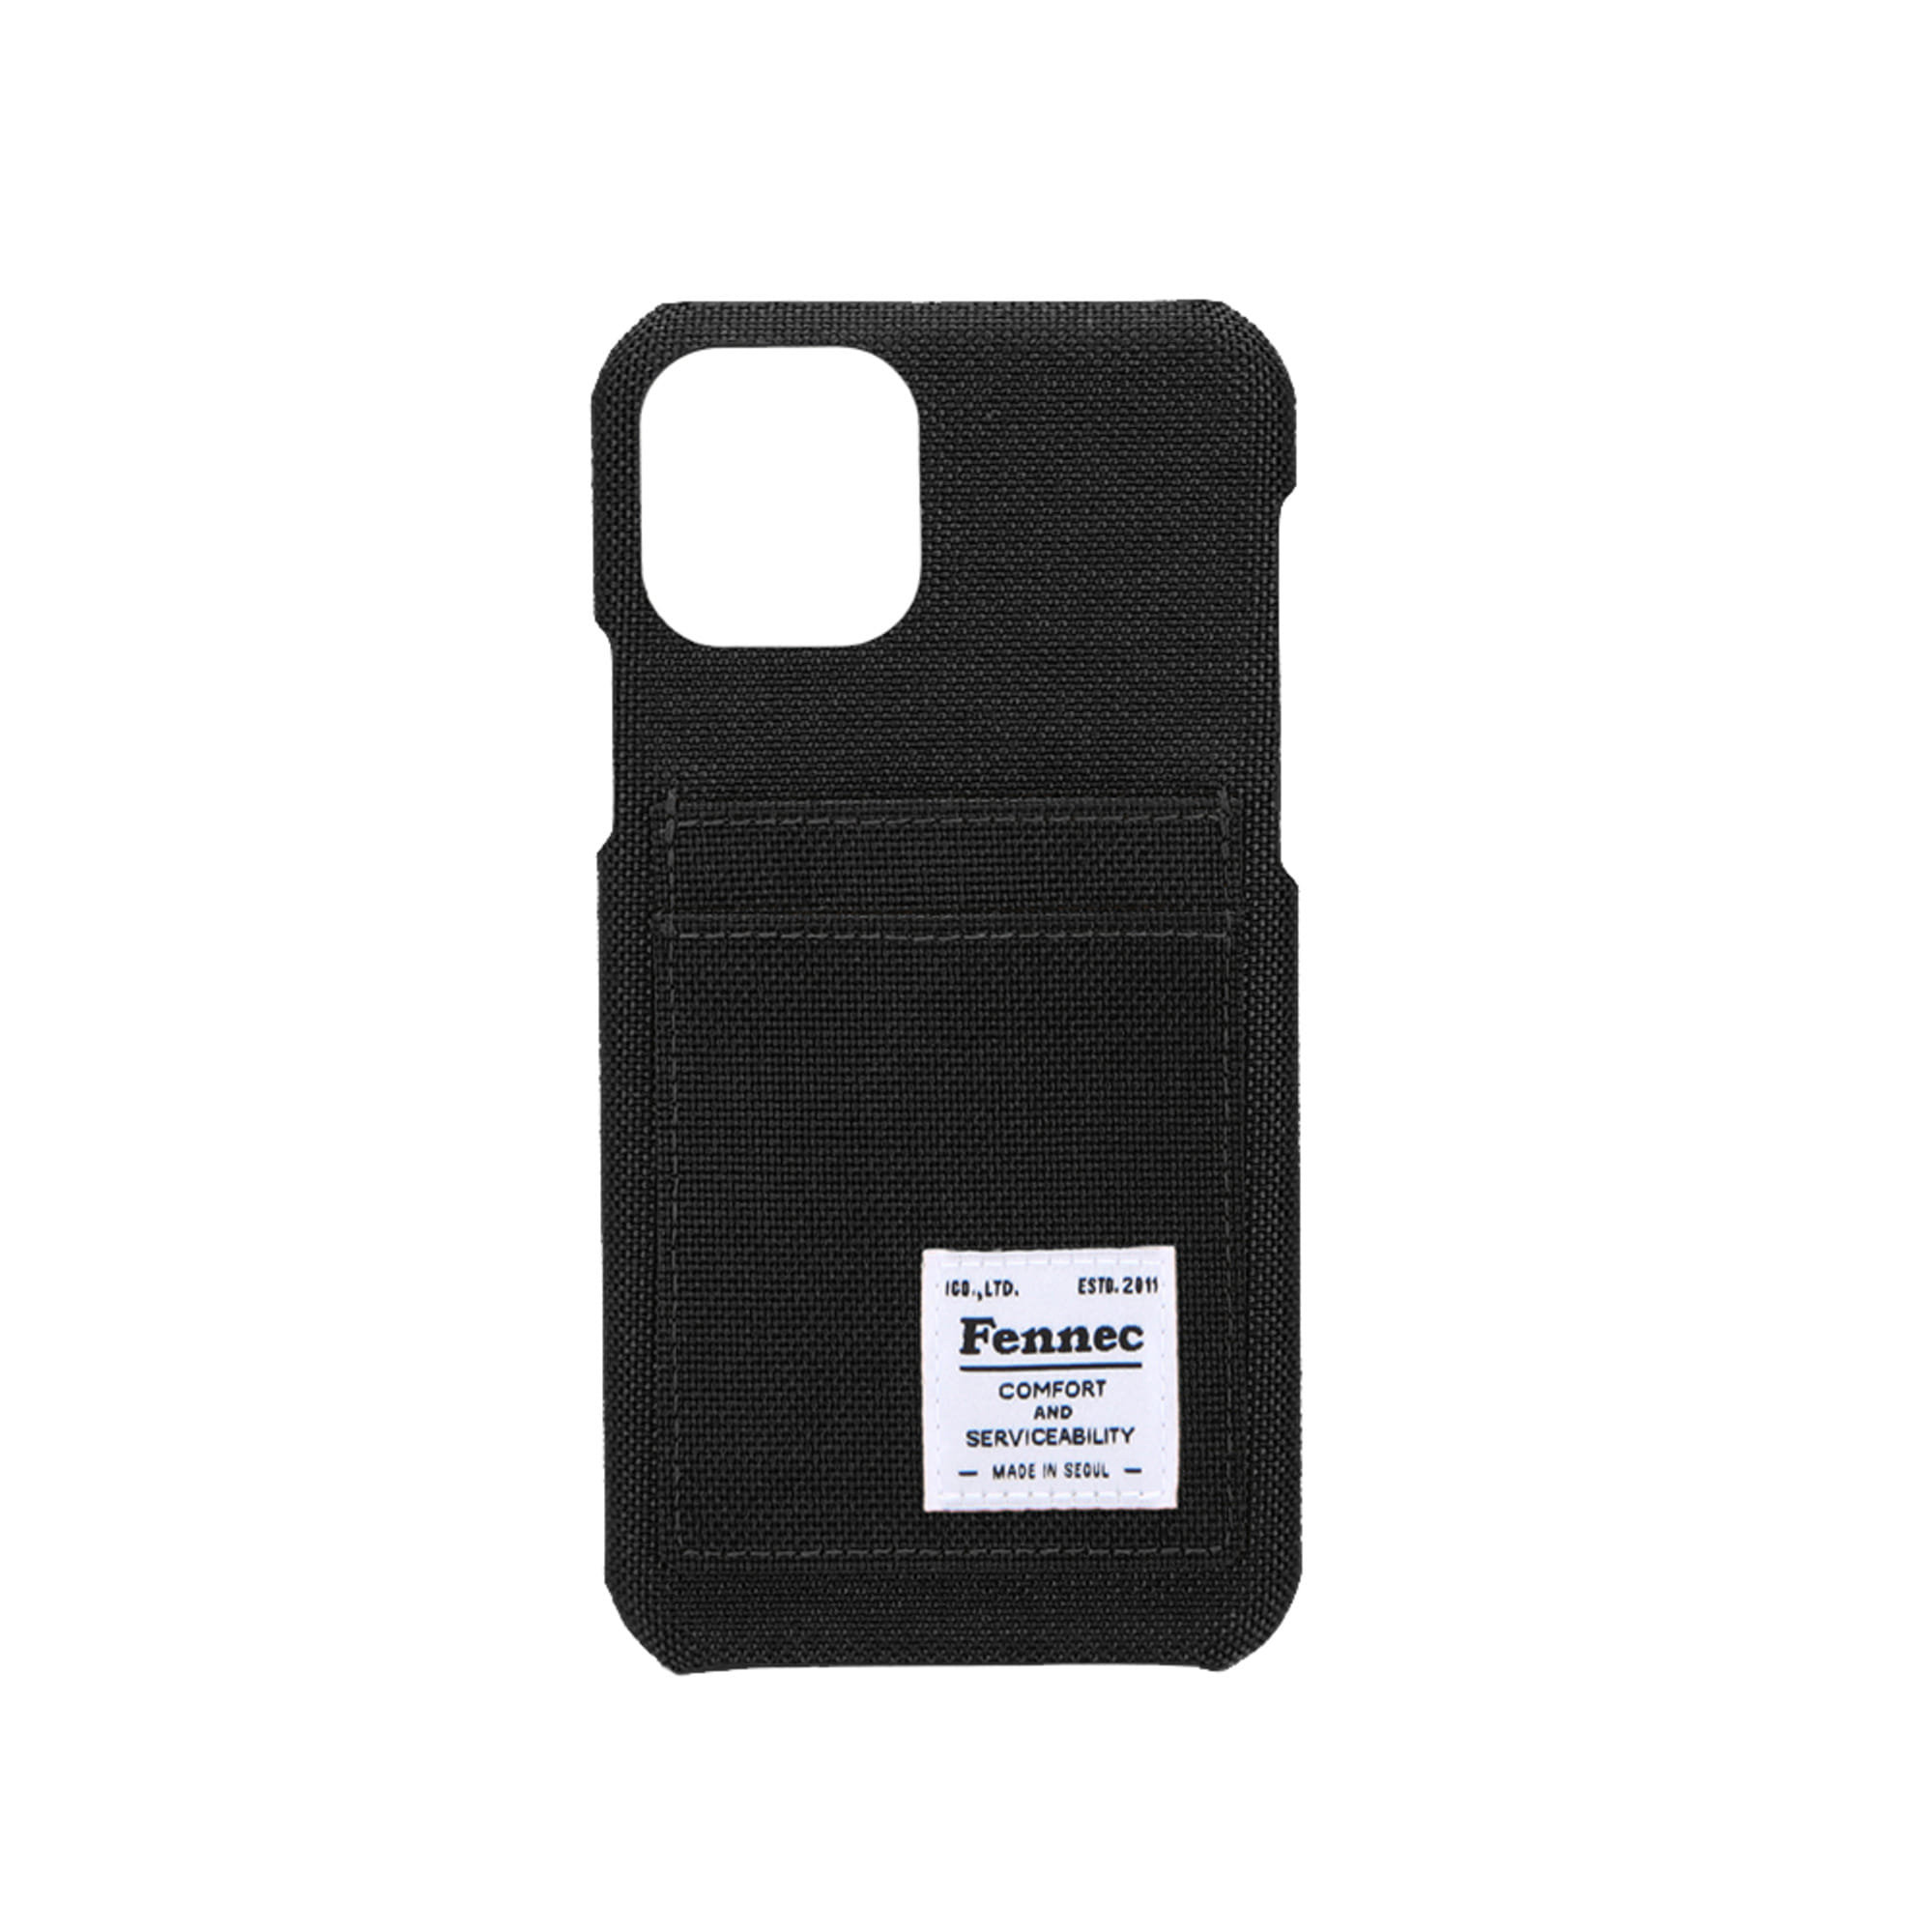 C&S iPHONE 11 PRO CARD CASE - BLACK